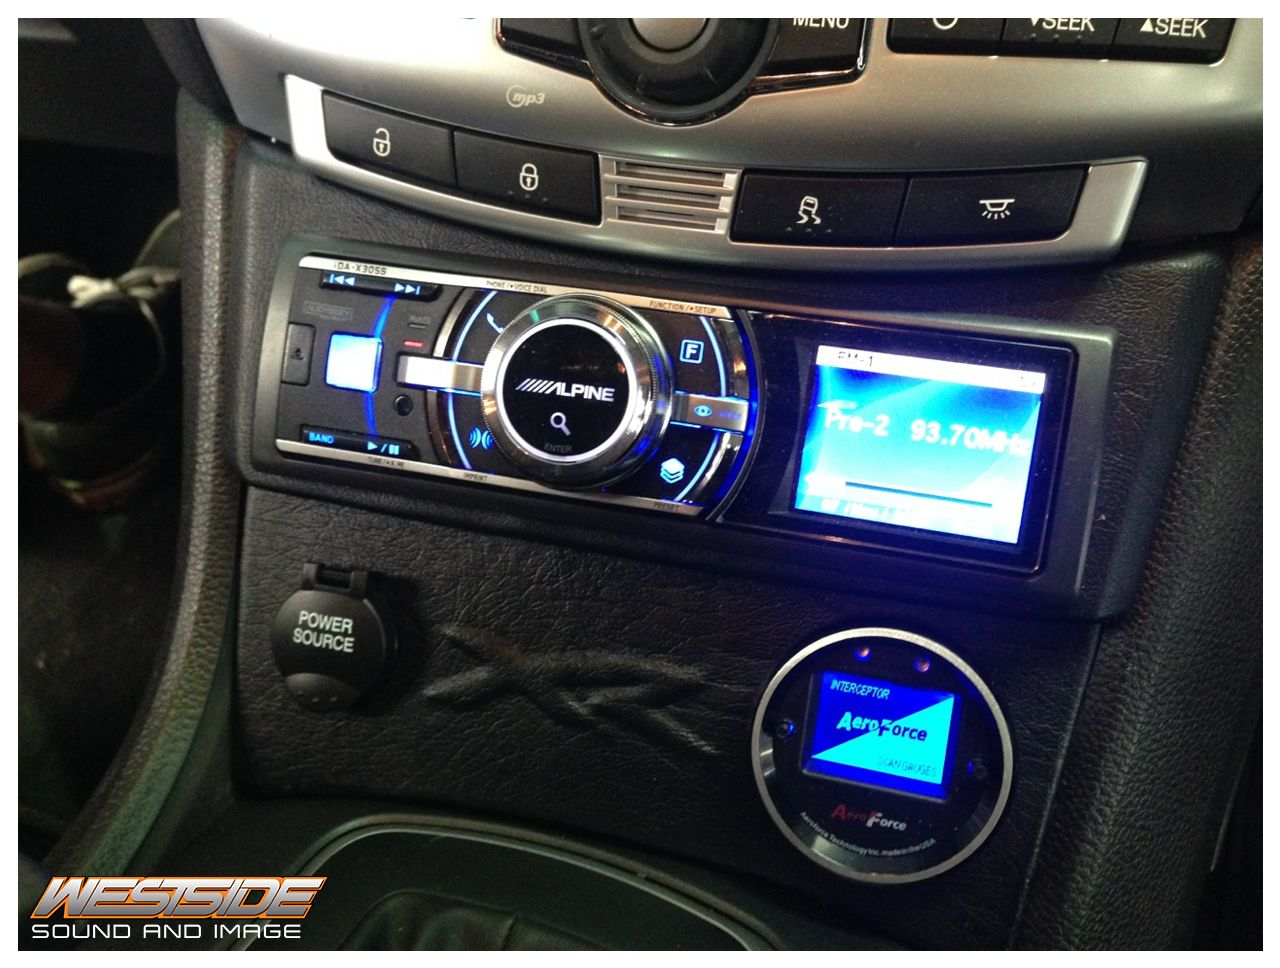 Ford Fg Xr6 Turbo Fitted With An Alpine Ida X305s Head Unit With